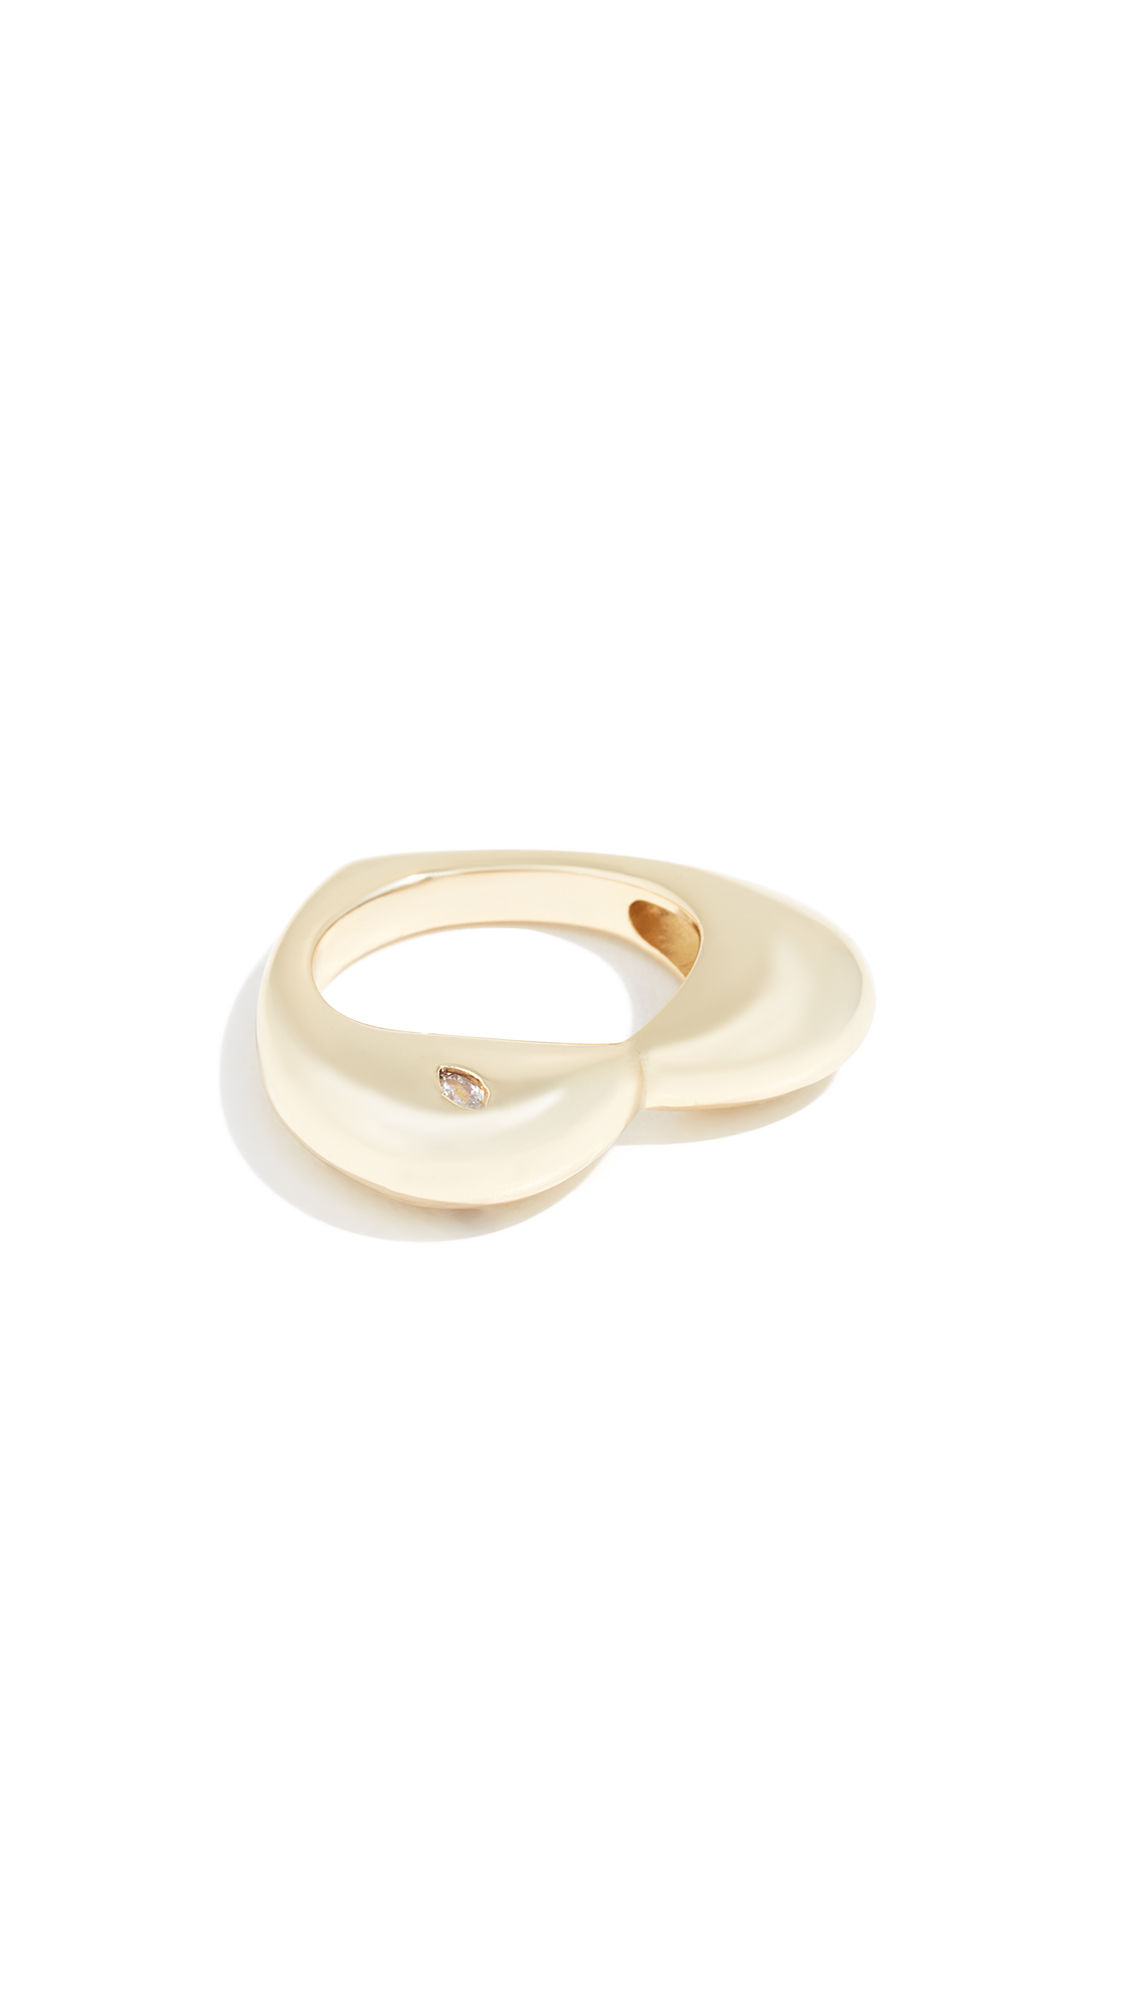 JULES SMITH Armor Ring in Gold